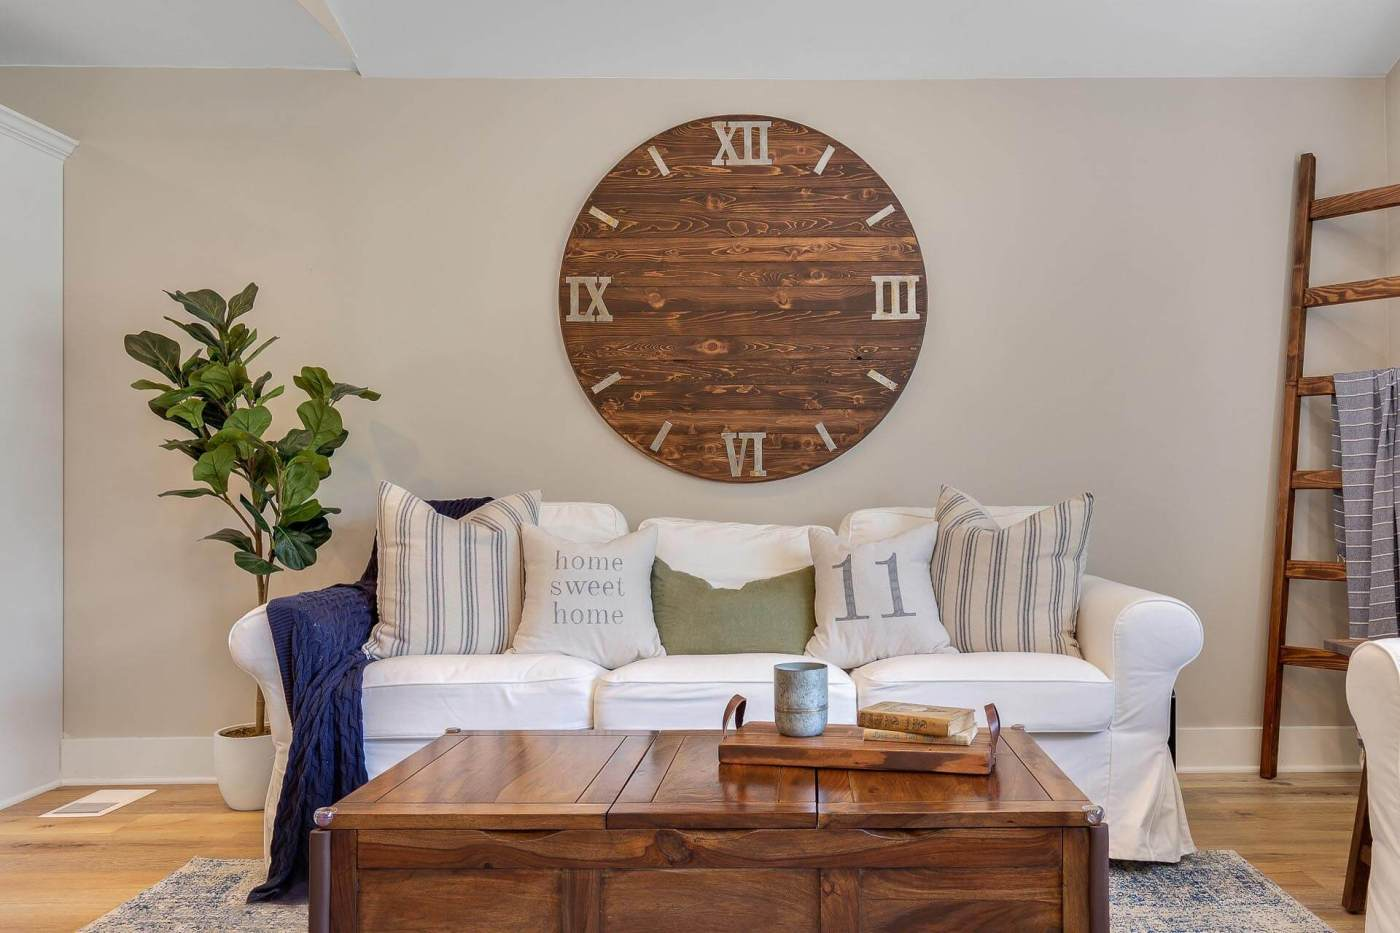 Photo of the interior design of the living room with a custom-made clock and professionally staged